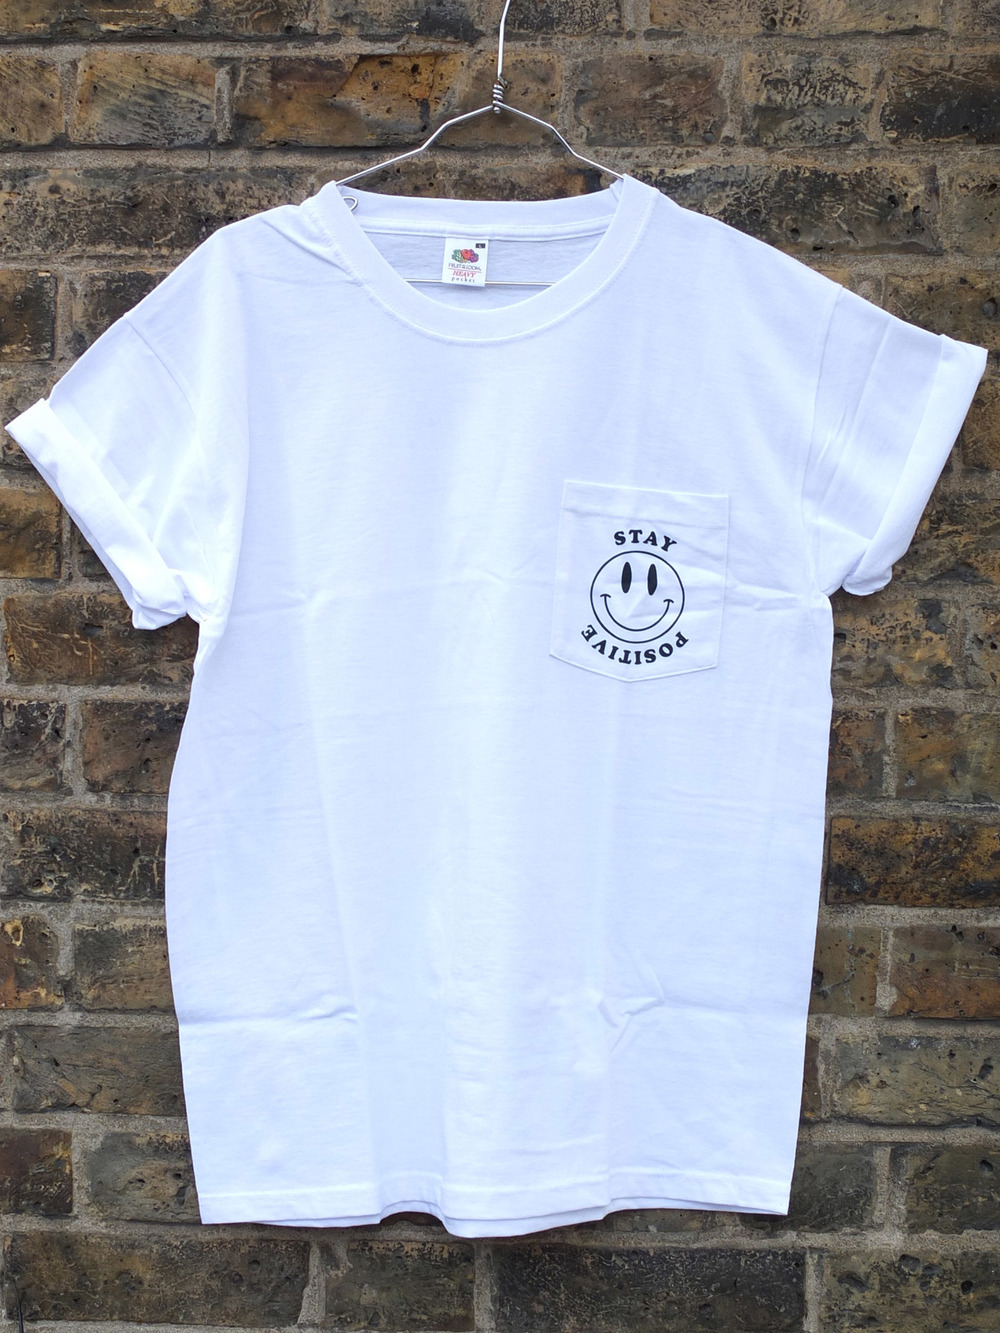 Stay Posive Screen Printed Pocket T-Shirts